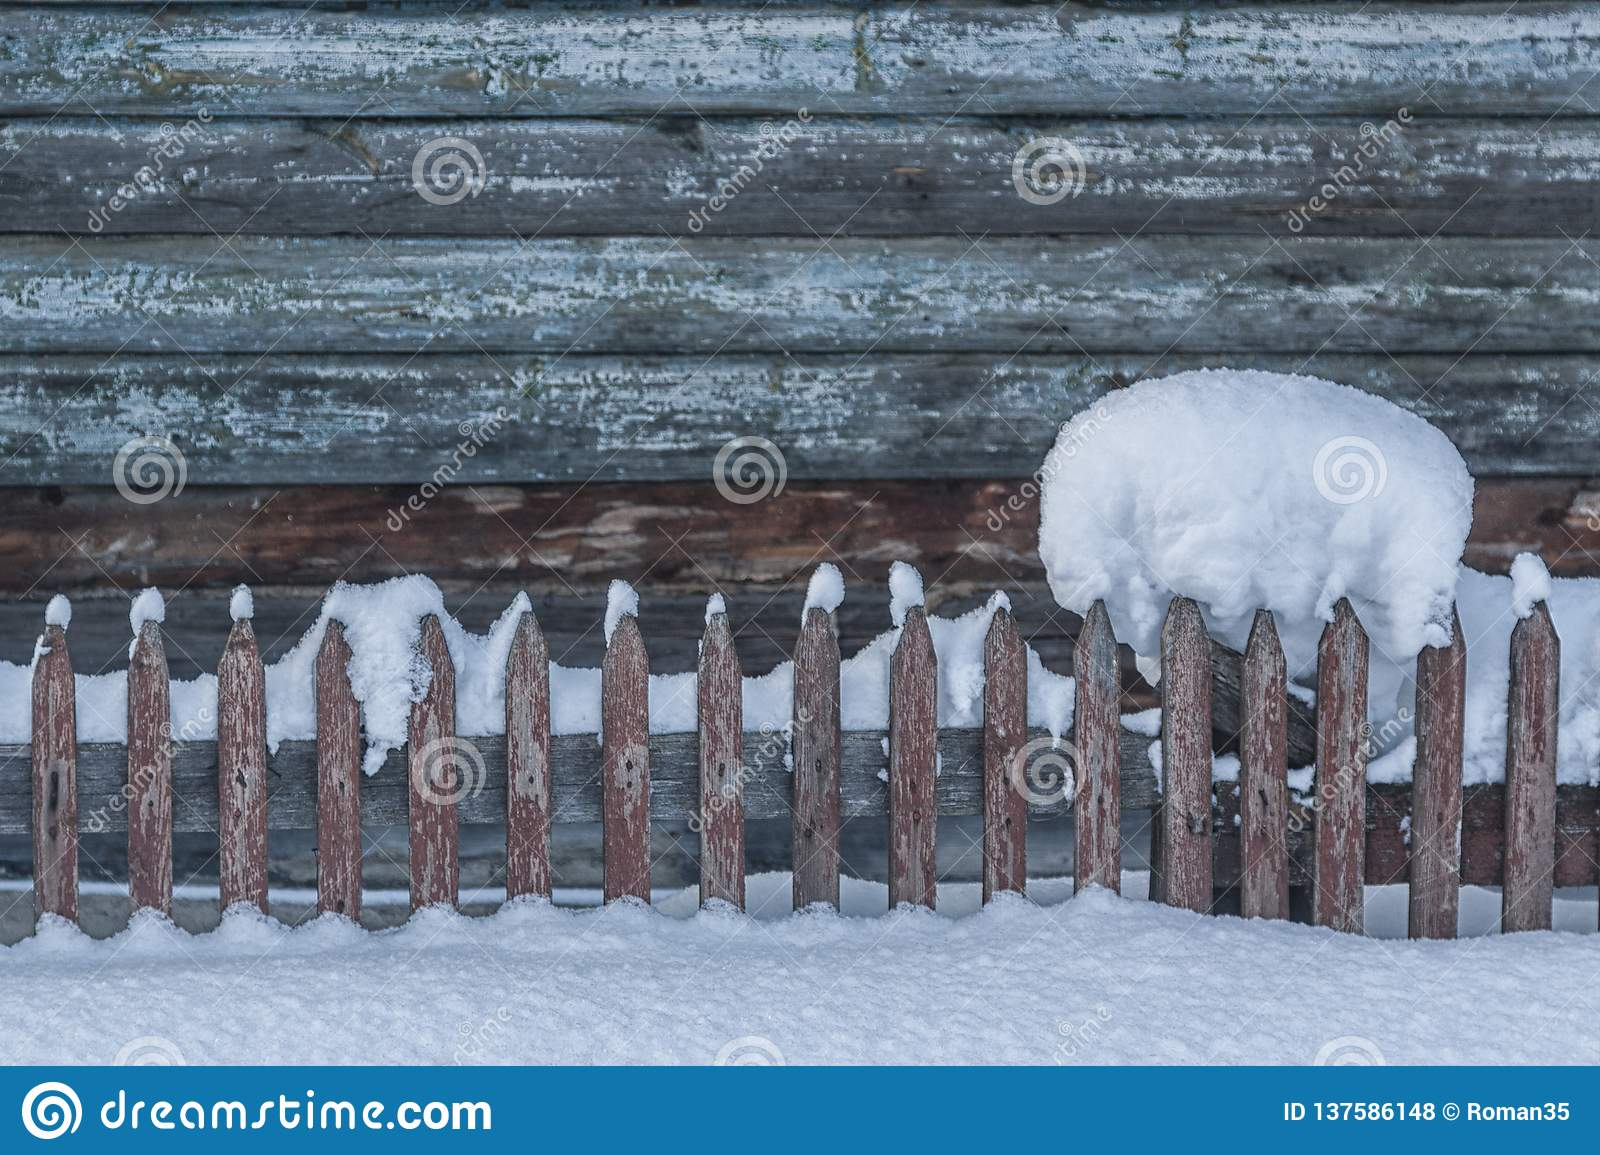 Beautiful clump of snow on a wooden fence with a snowy backdrop. There is a beautiful wooden palisade ahead. Christmas